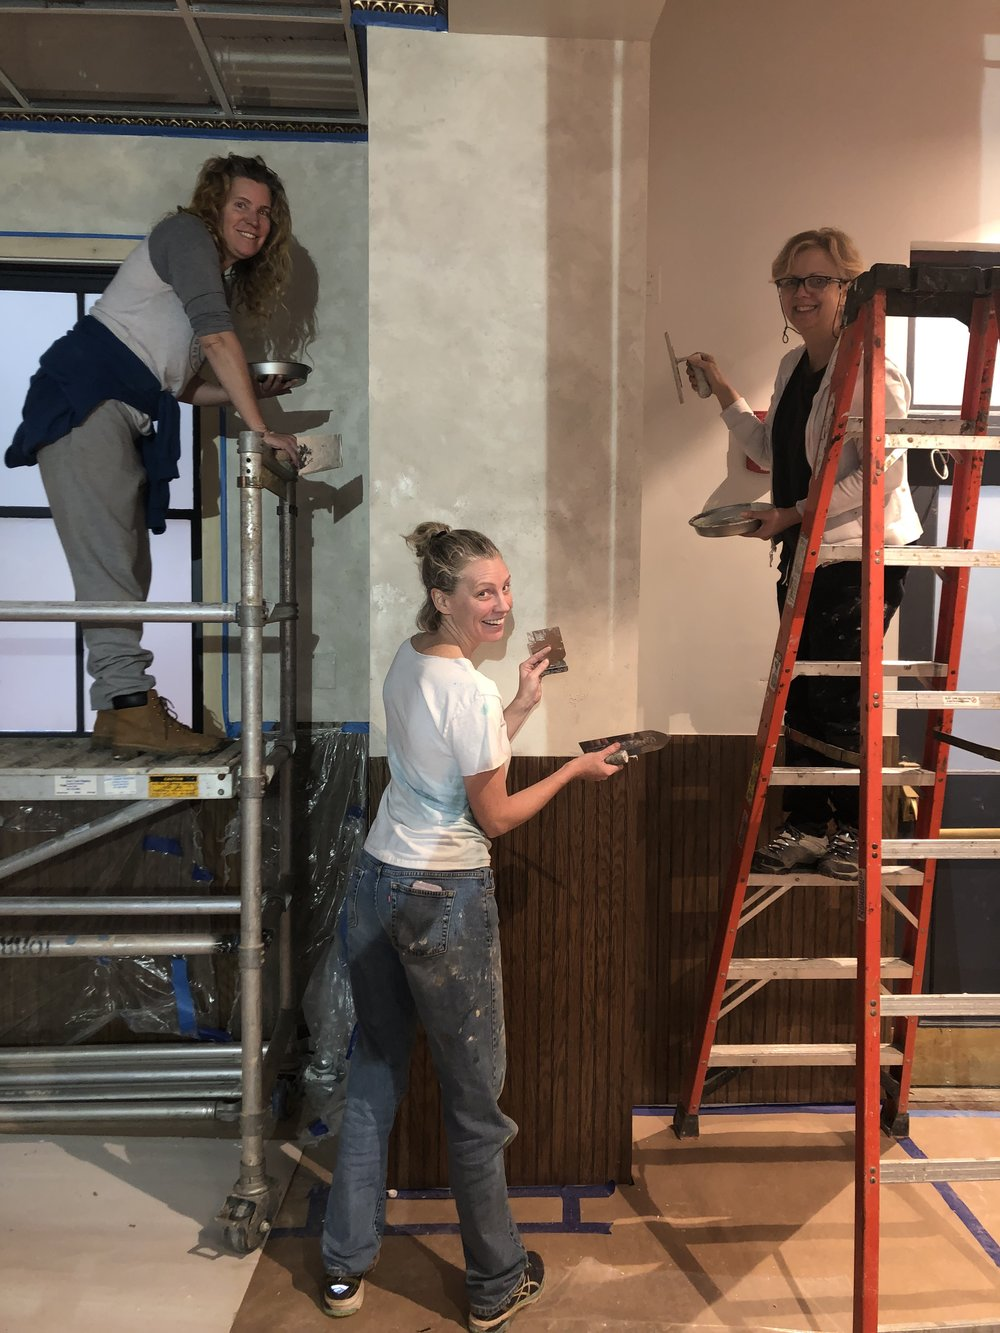 We come together to help on projects. This Cathy Rinn's project- a new restaurant in Washington DC.